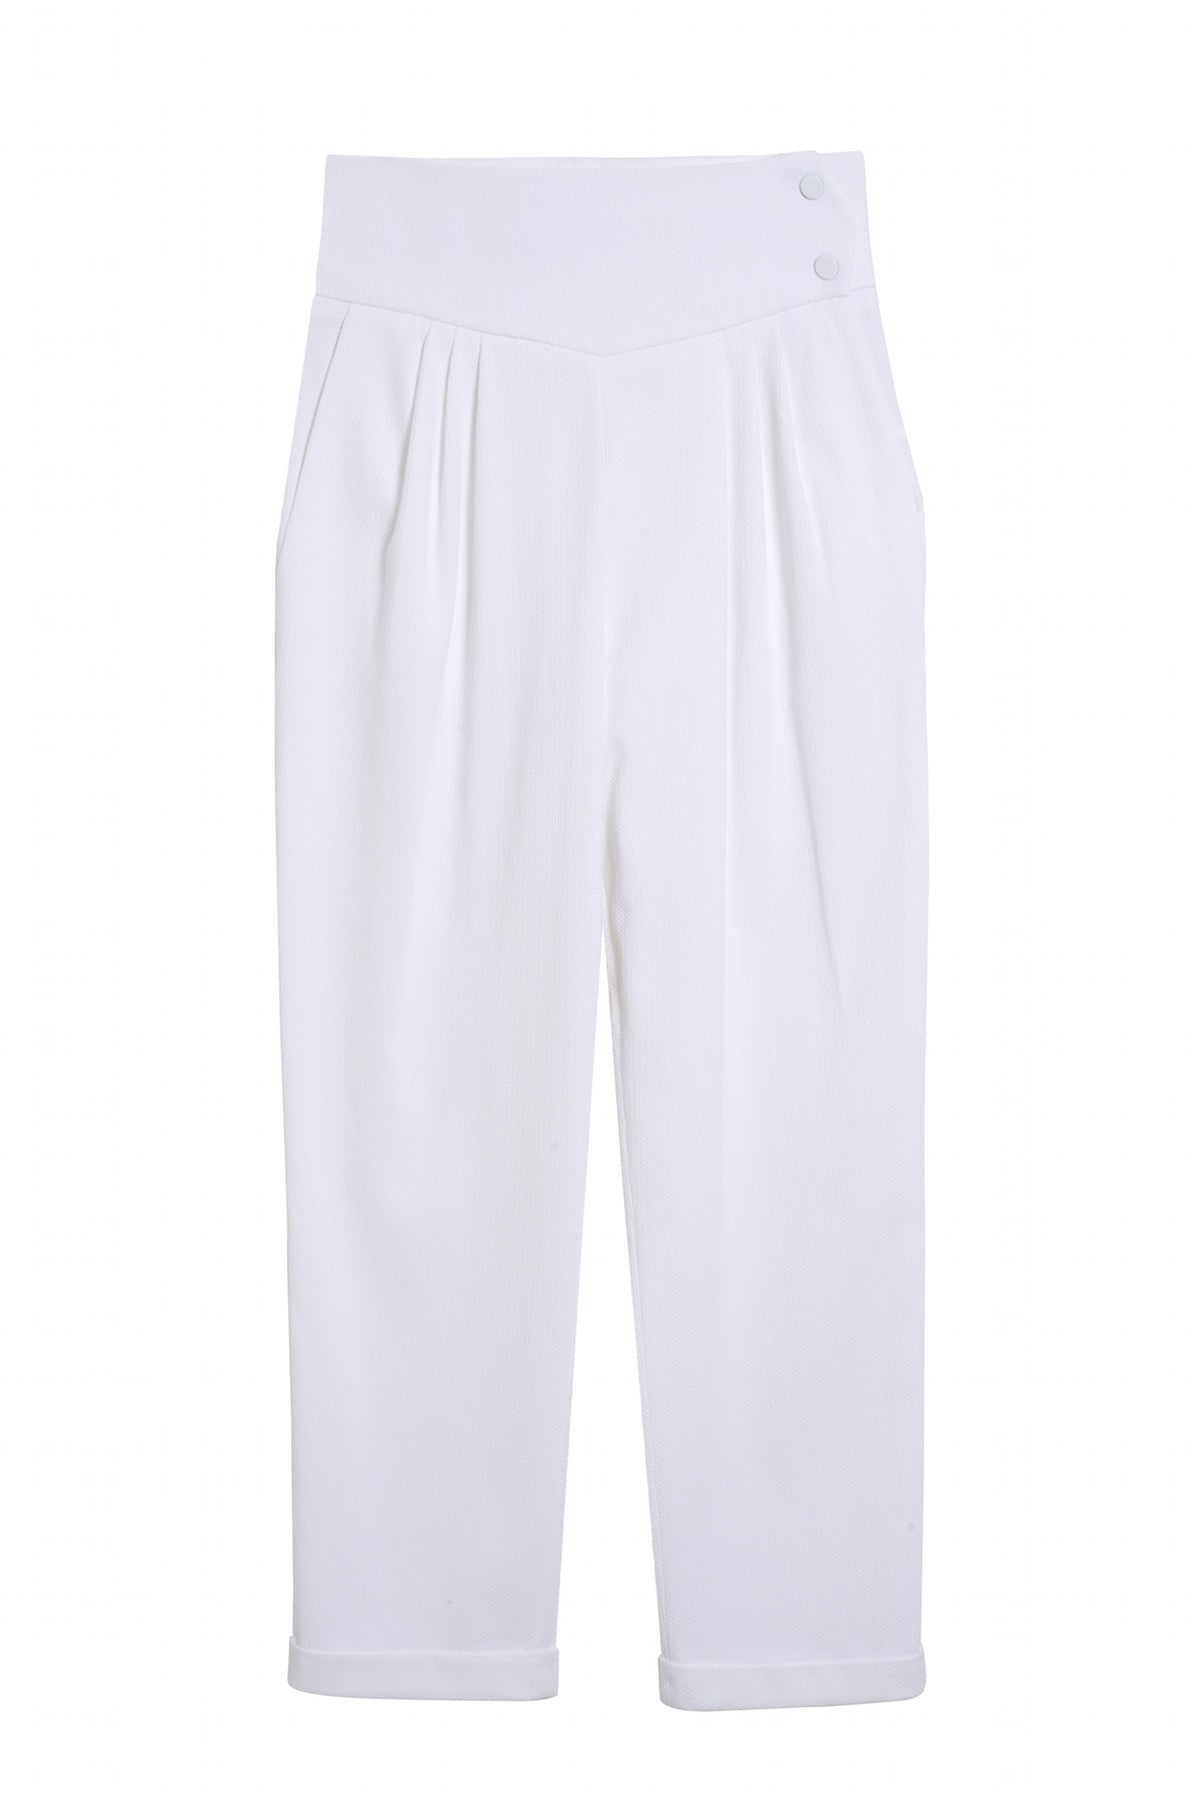 cotton white carrot pants